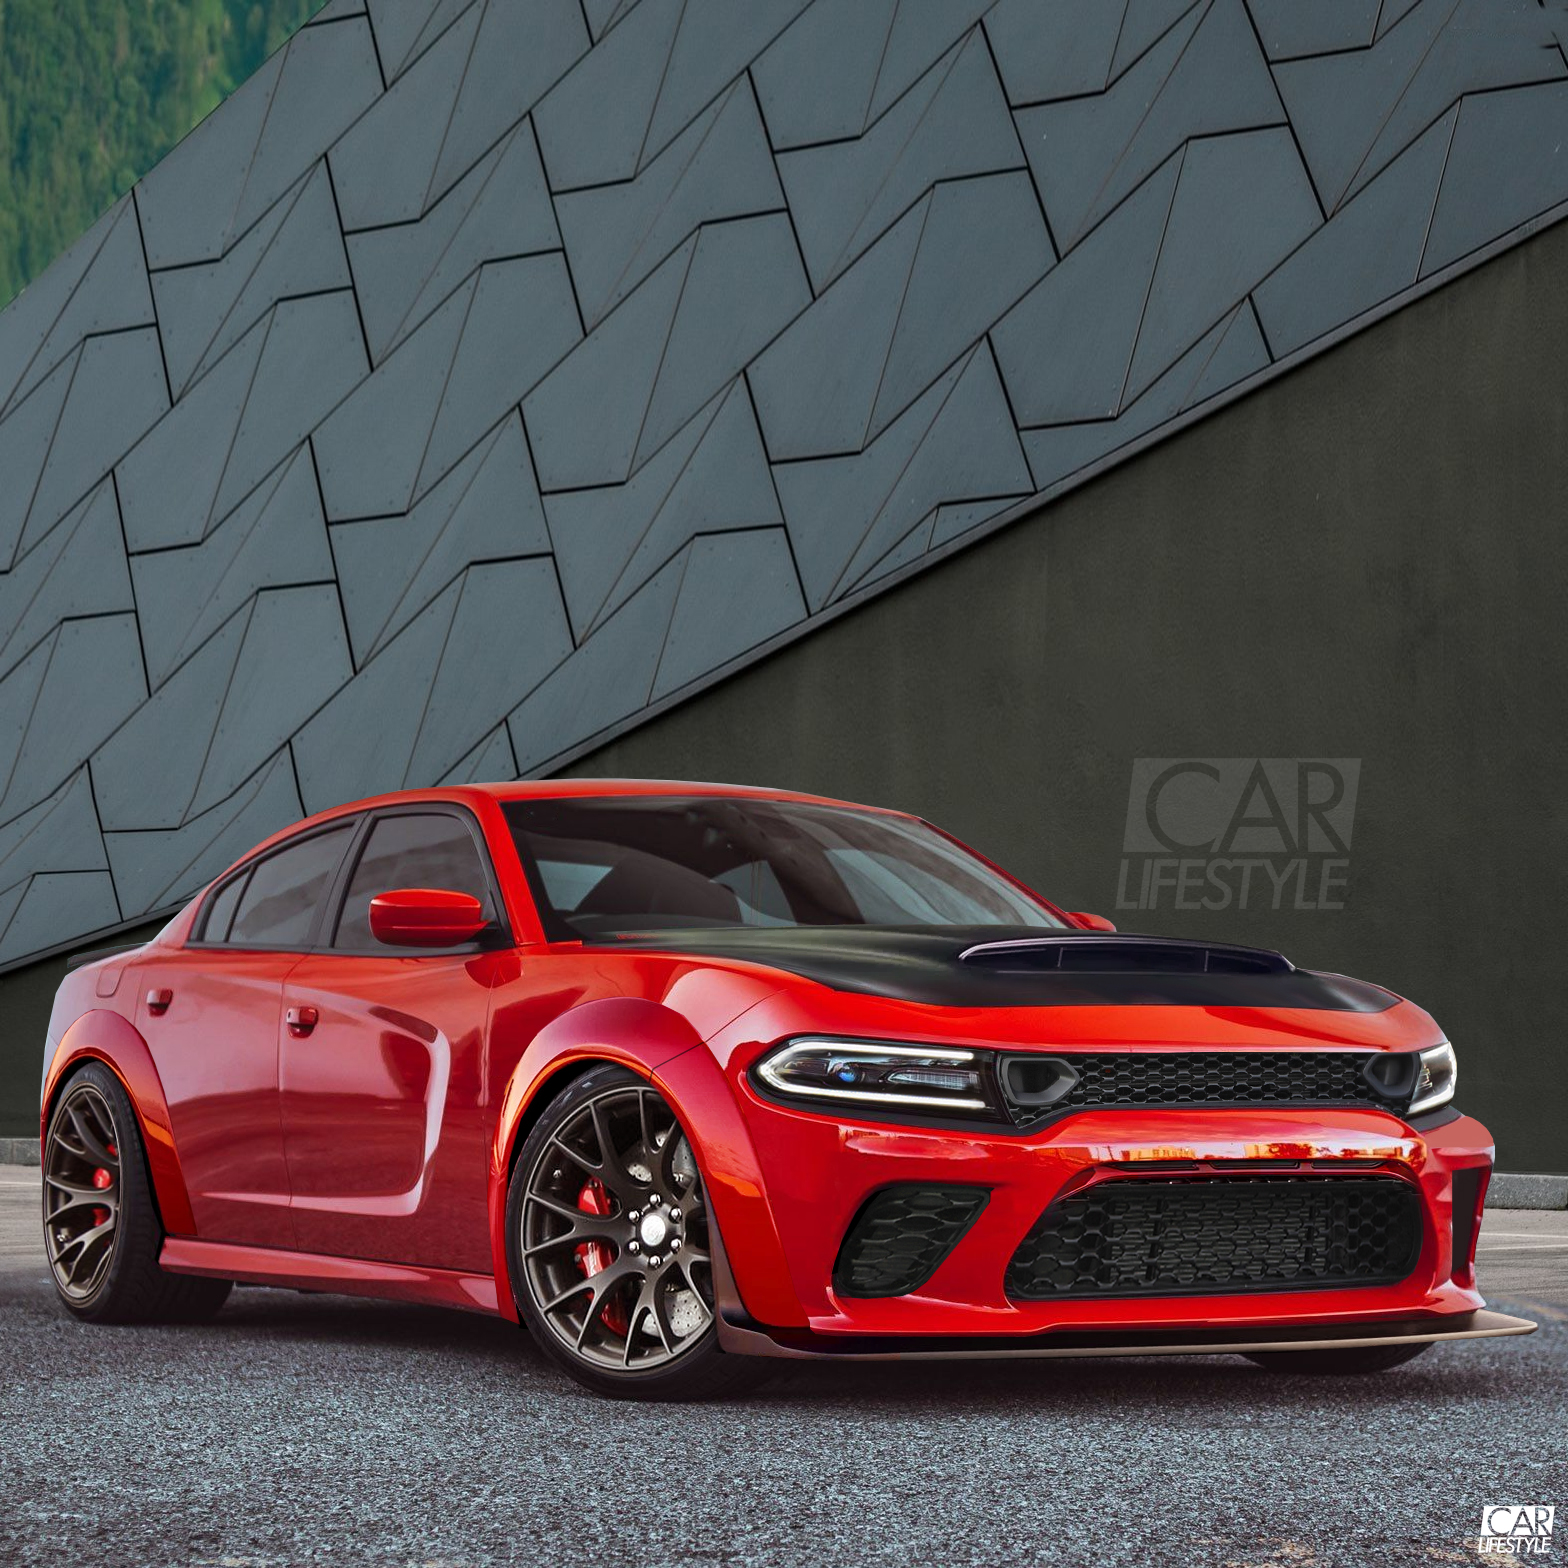 Could Dodge be building a 900hp Dodge Charger named Angel? What do you guys think of this render we made.